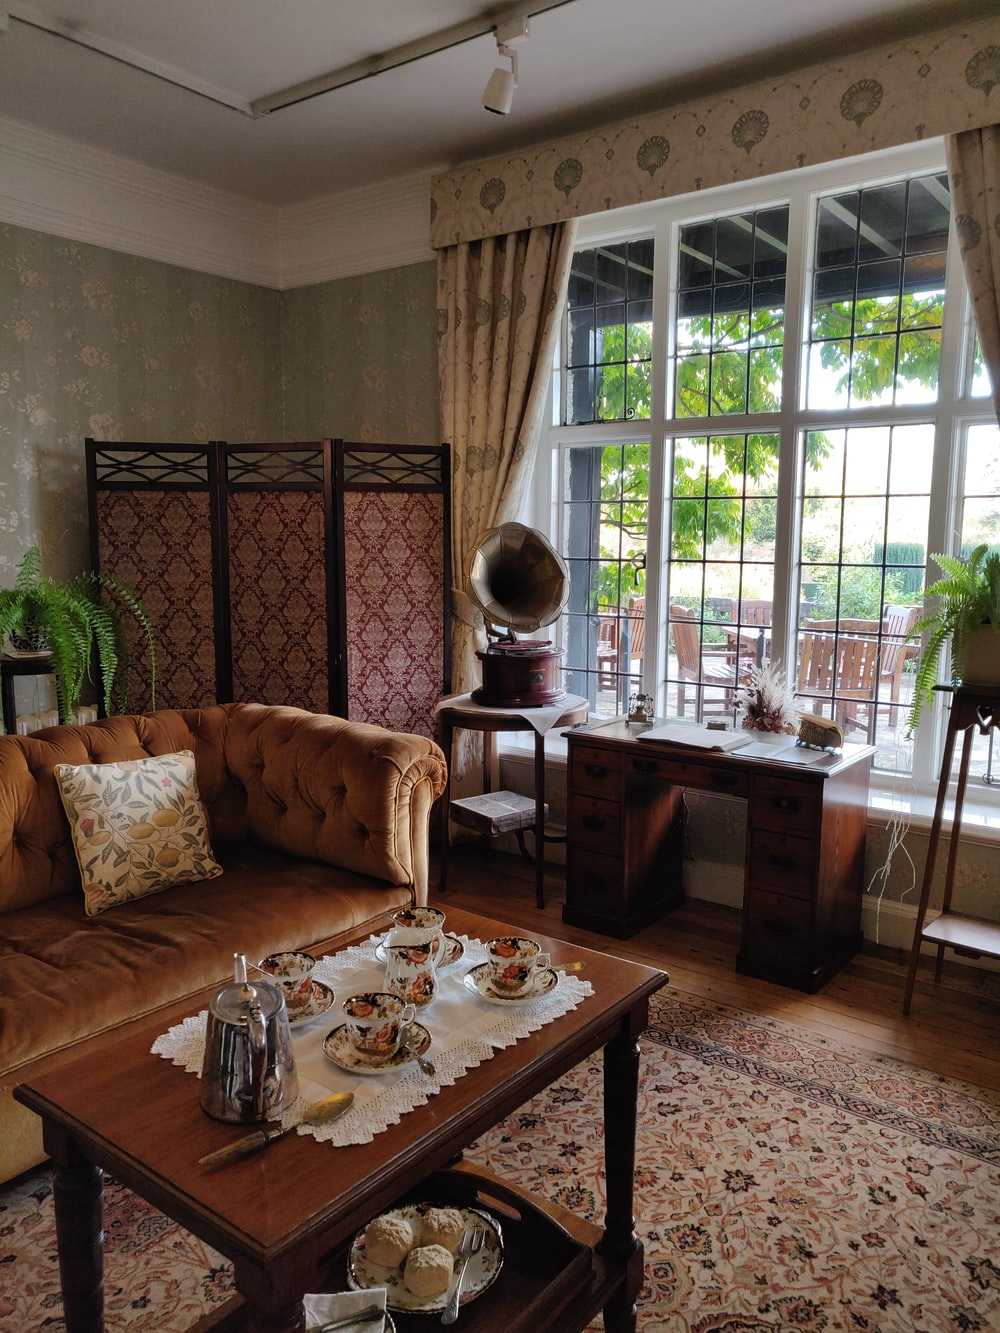 brown wooden table with white and brown floral table cloth